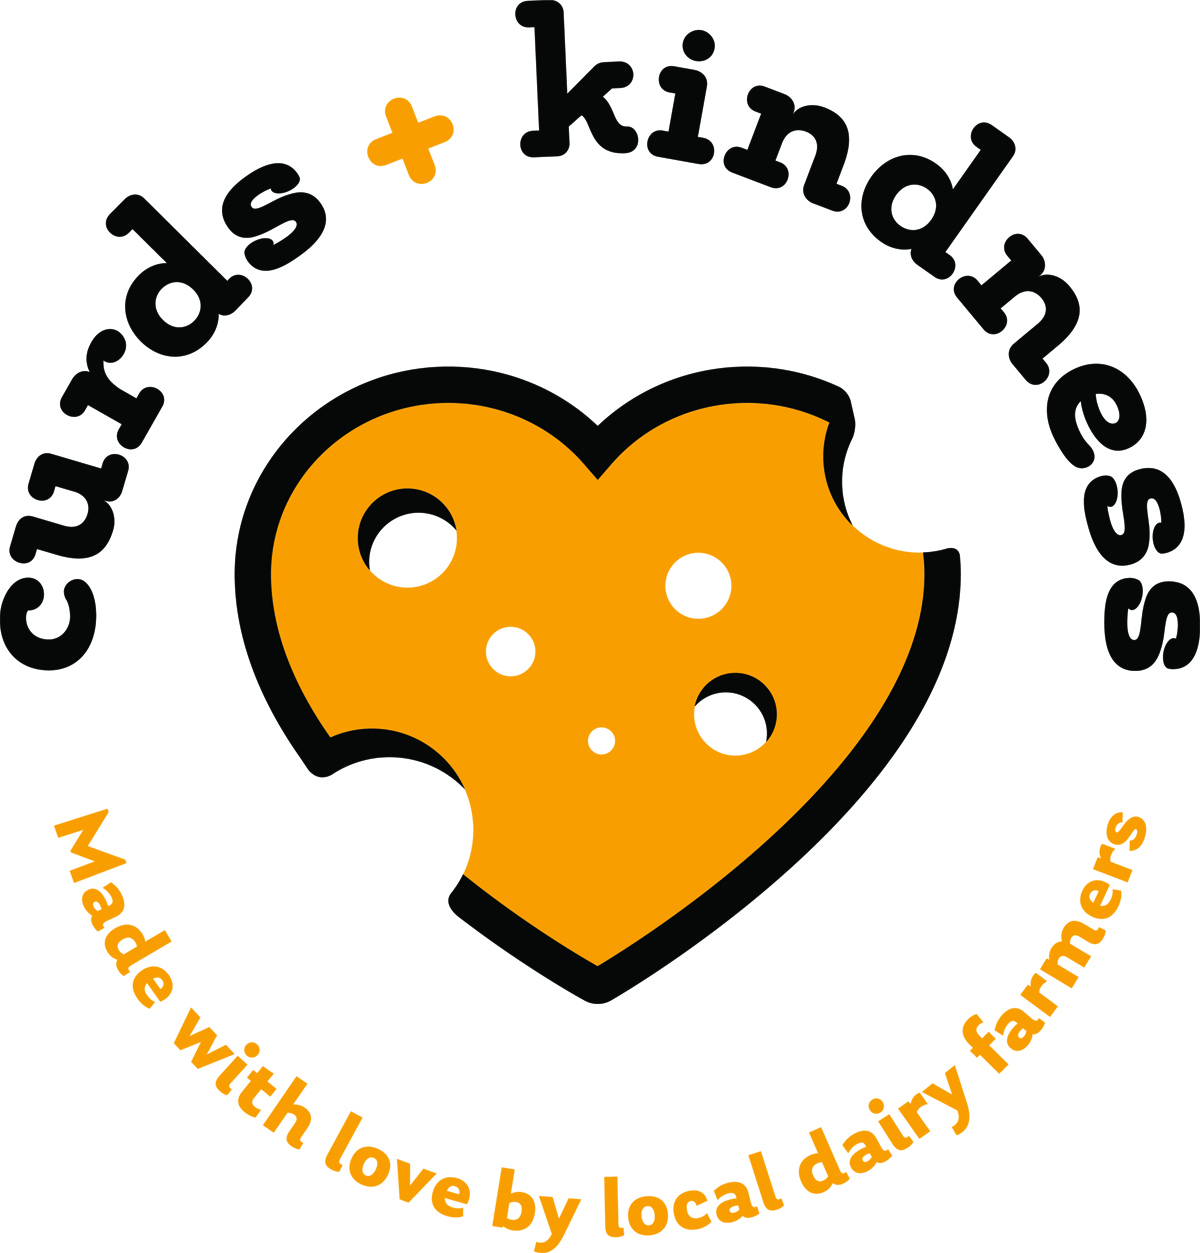 20200501 Curds Kindness